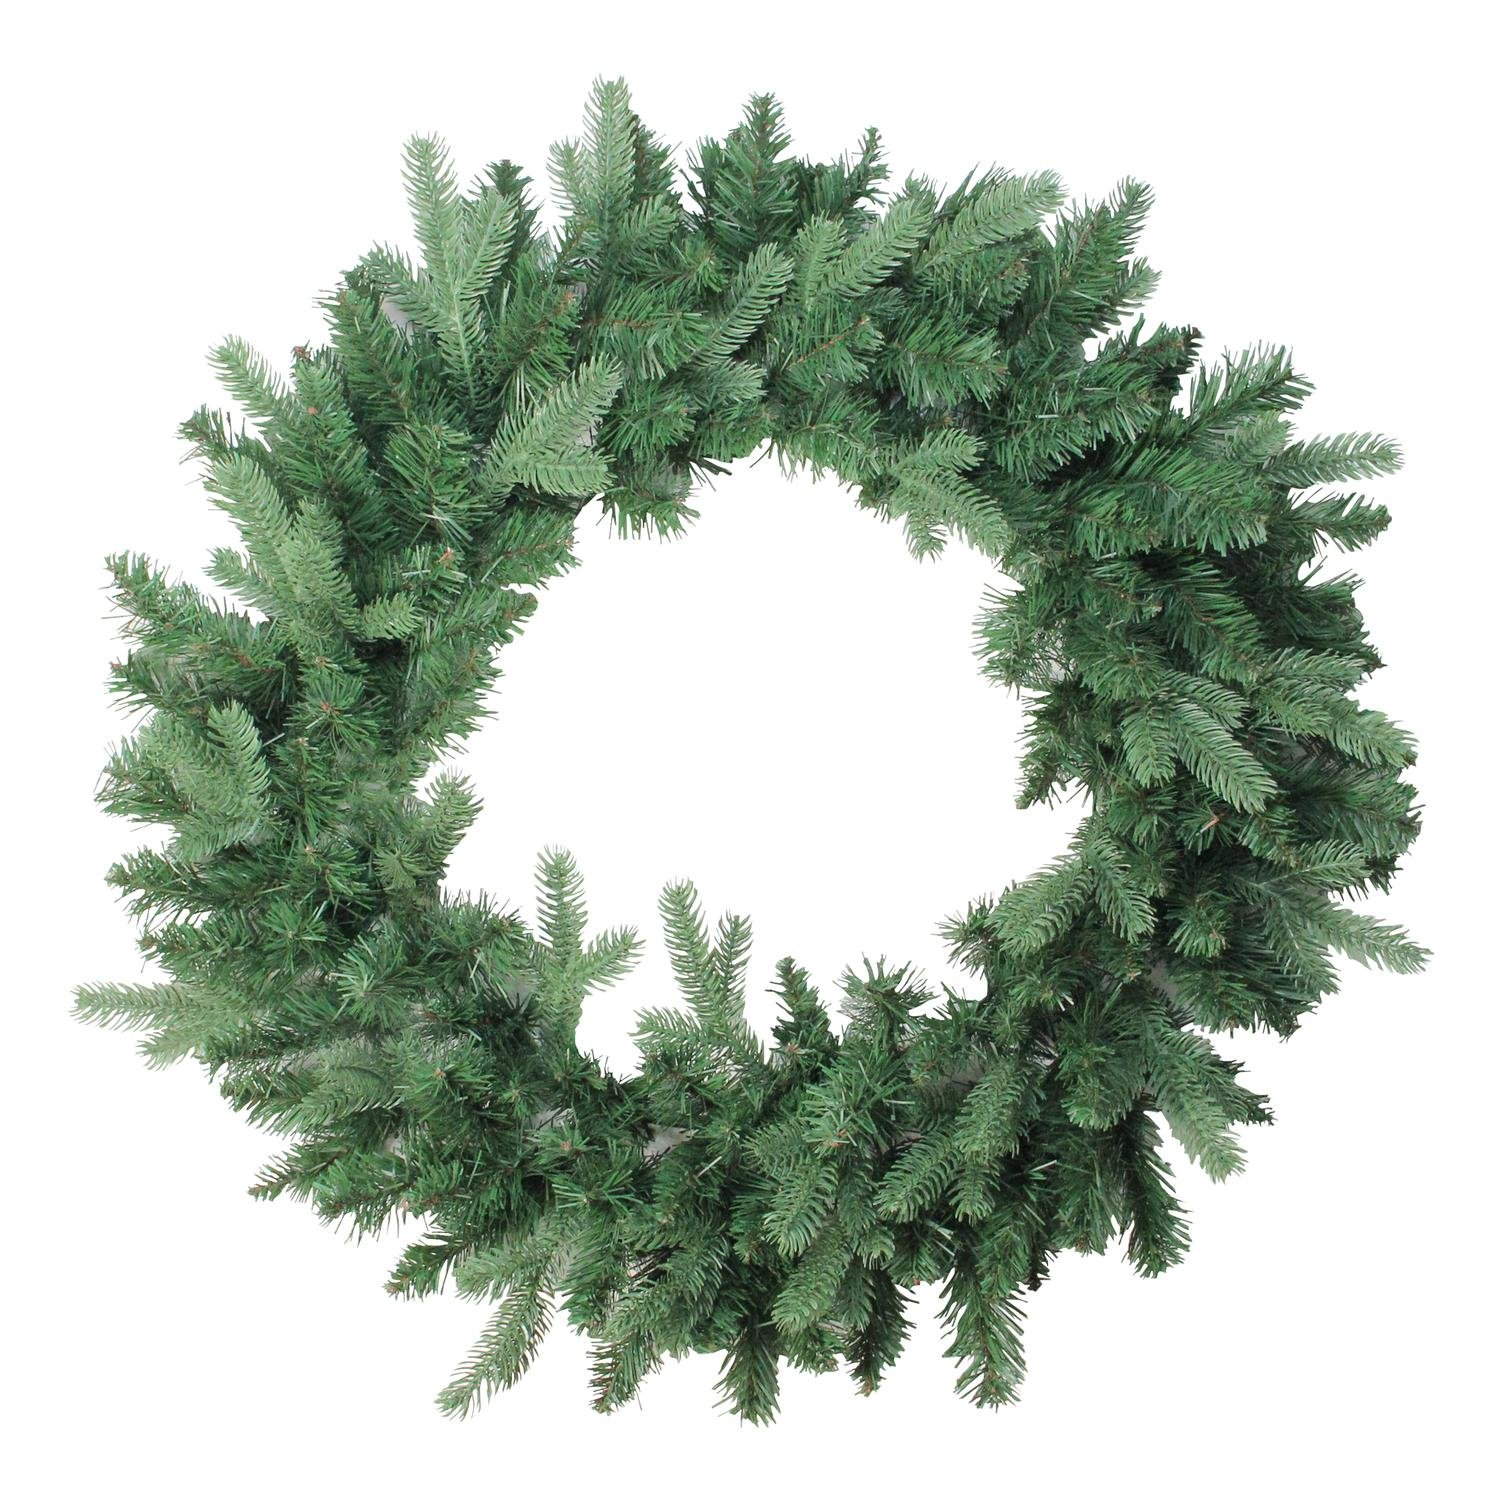 Northlight Coniferous Mixed Pine Artificial Christmas Wreath, 30